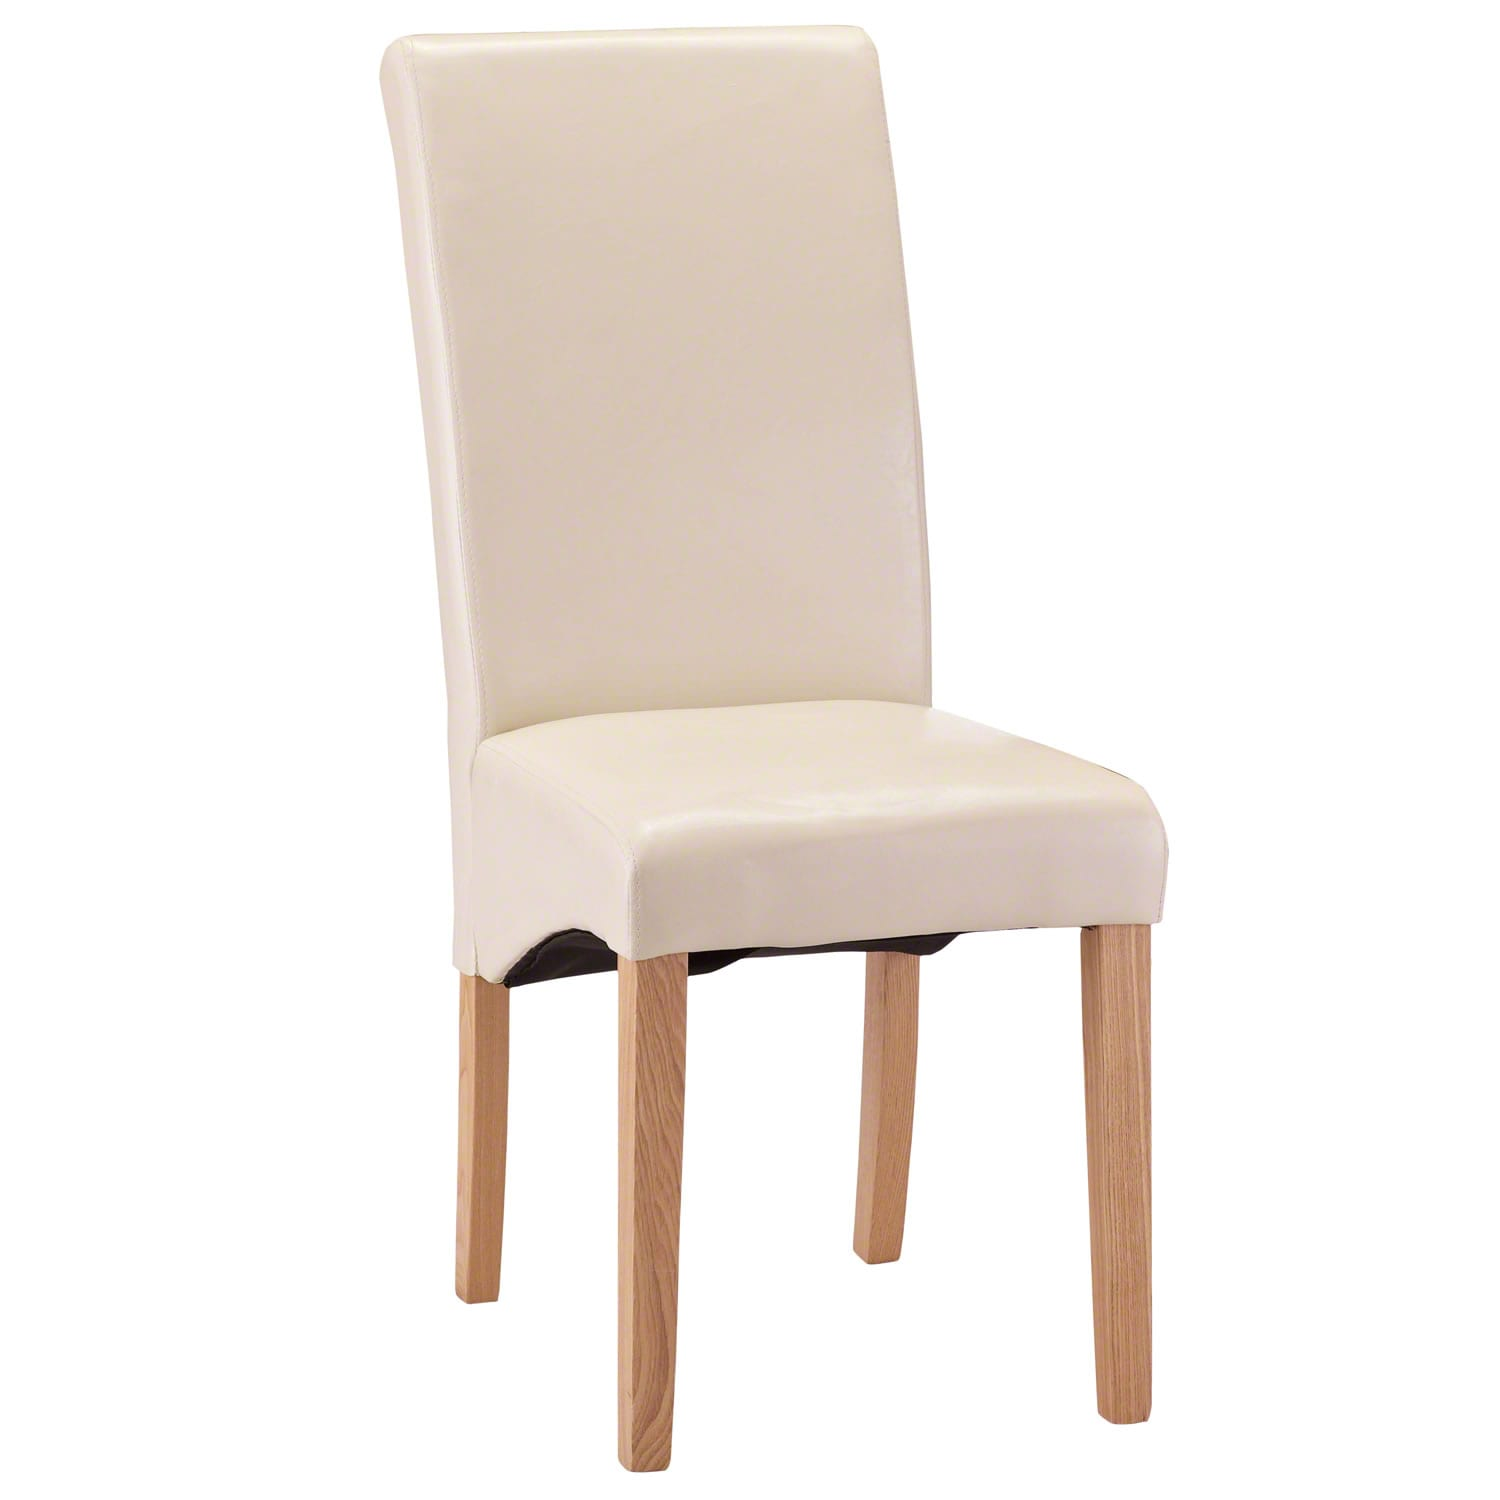 Phenomenal Cyprus Dining Chair Pdpeps Interior Chair Design Pdpepsorg